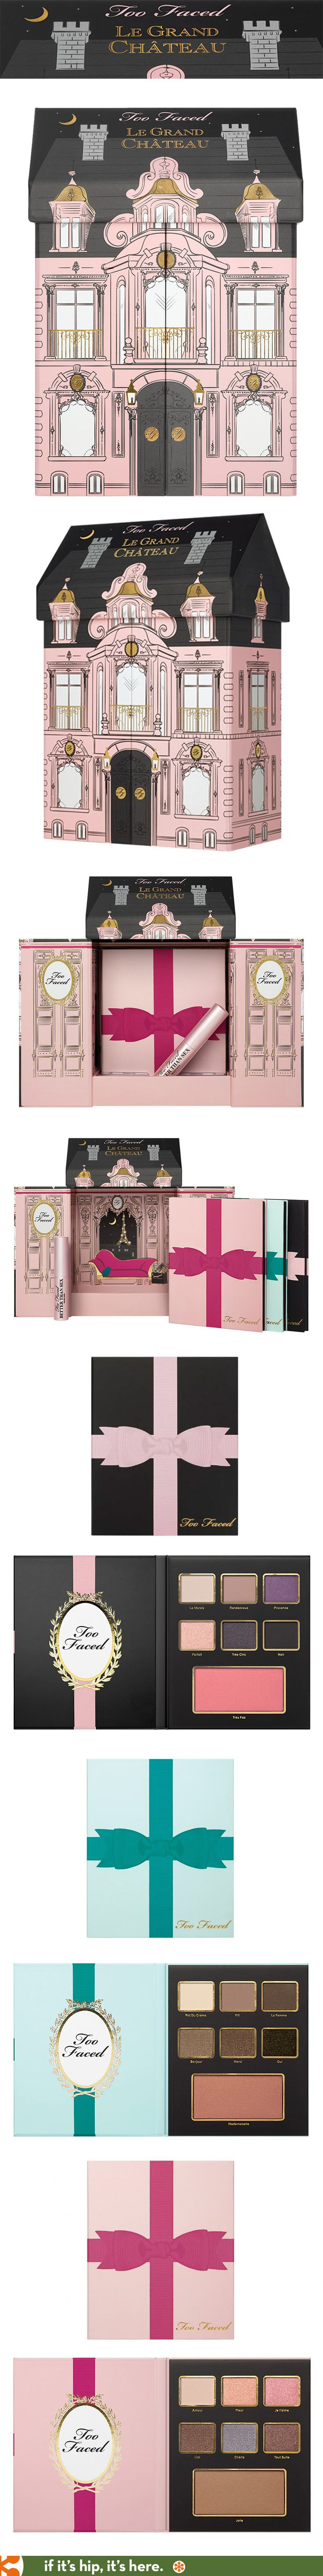 How cute is this special packaging for Too Faced's Le Grand Chateau Limited Edition Christmas Collection of makeup!?